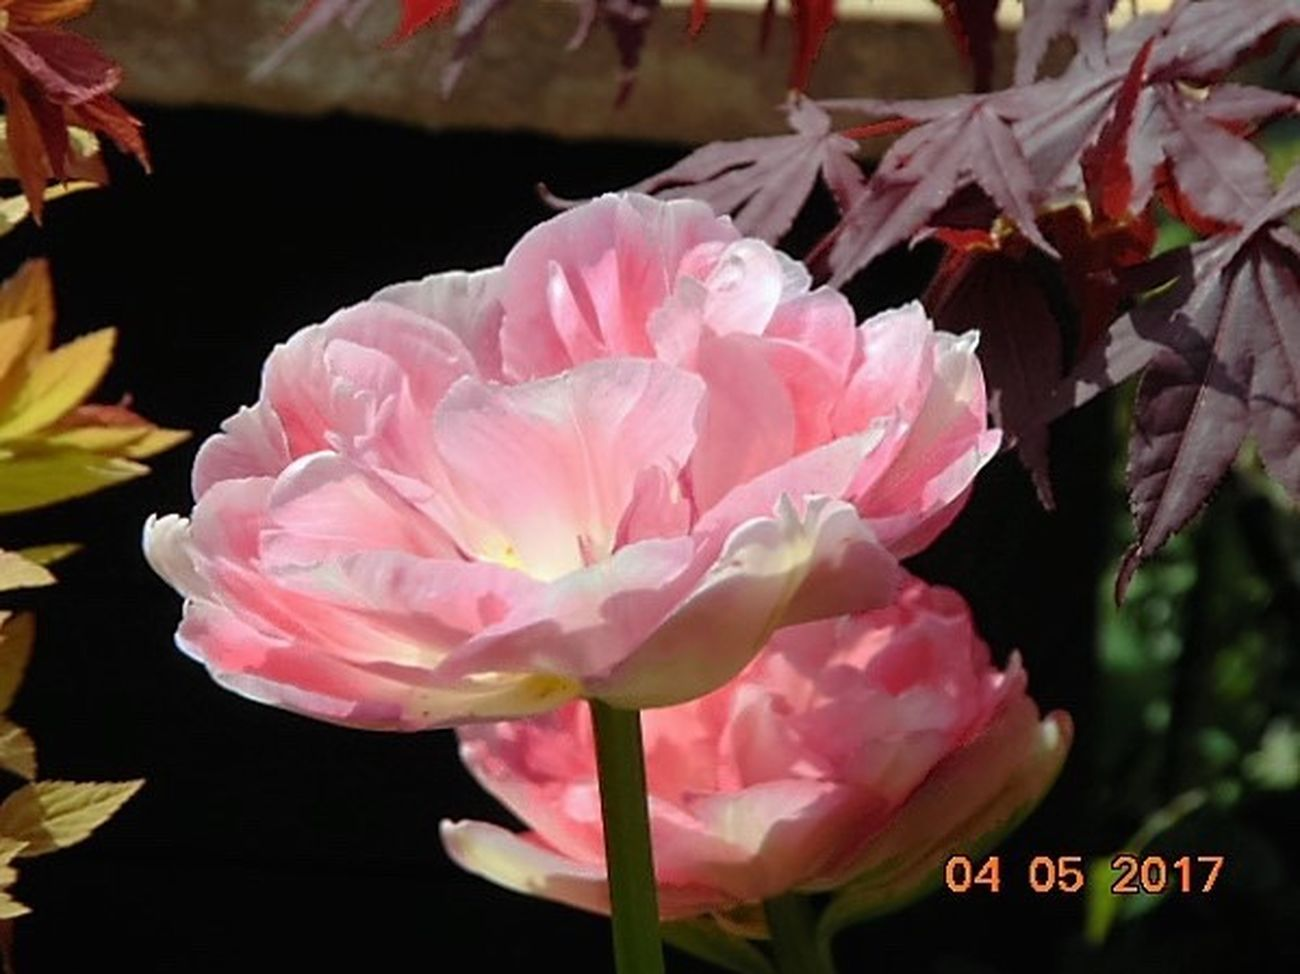 St Agnes Pink Color Flower Beauty In Nature Close-up Growth Day Fragility Outdoors No People My Garden Single Flower Flower Head Tulip Angelique